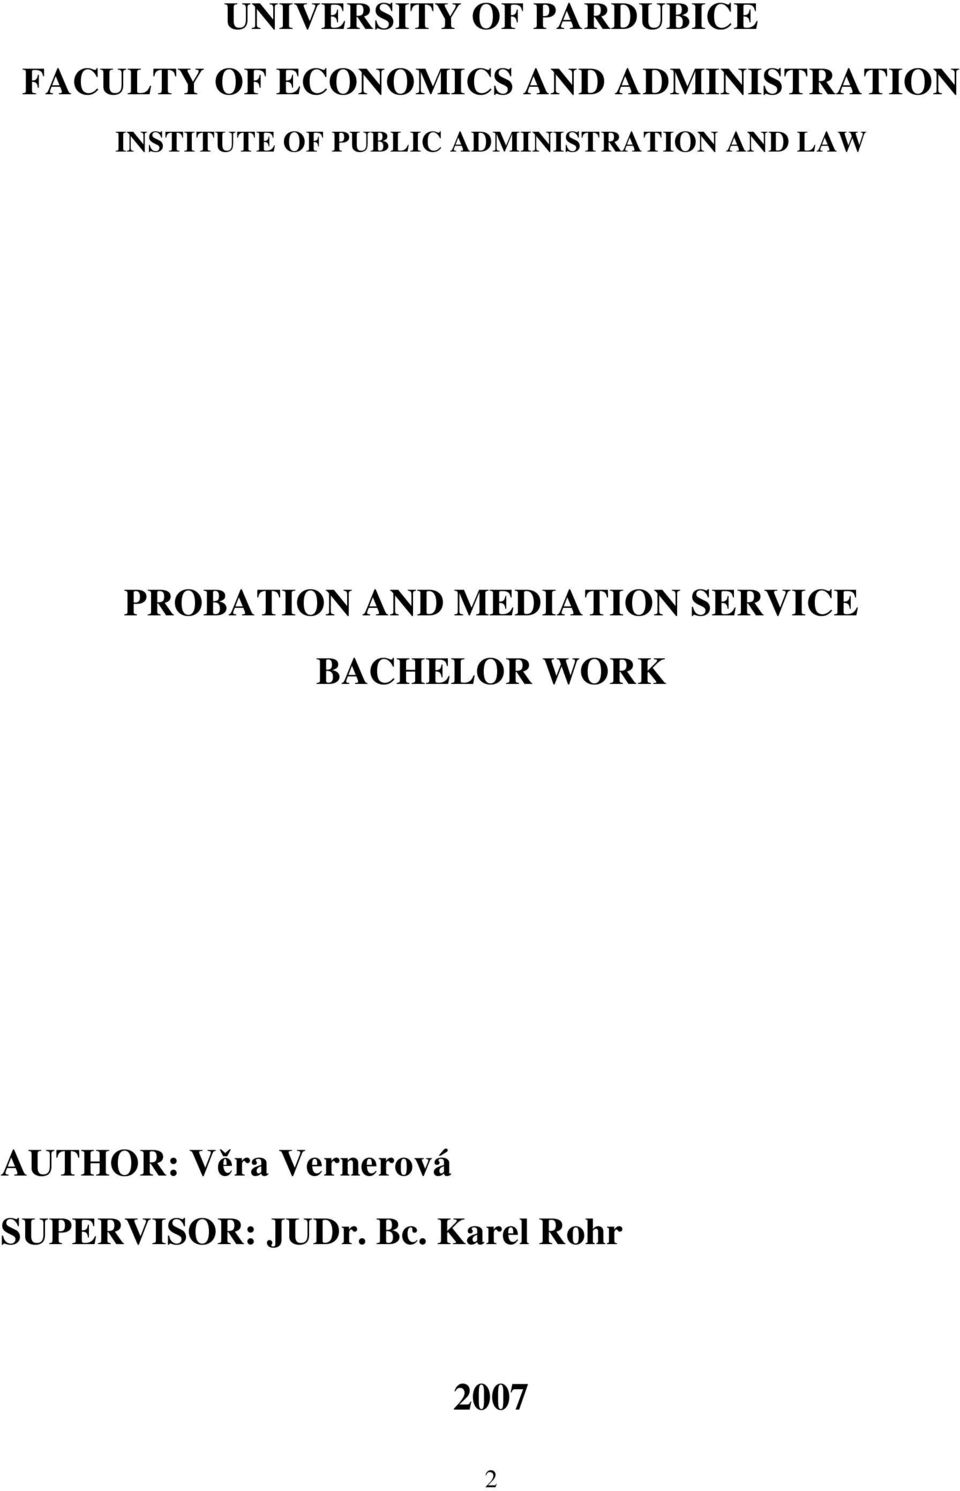 LAW PROBATION AND MEDIATION SERVICE BACHELOR WORK